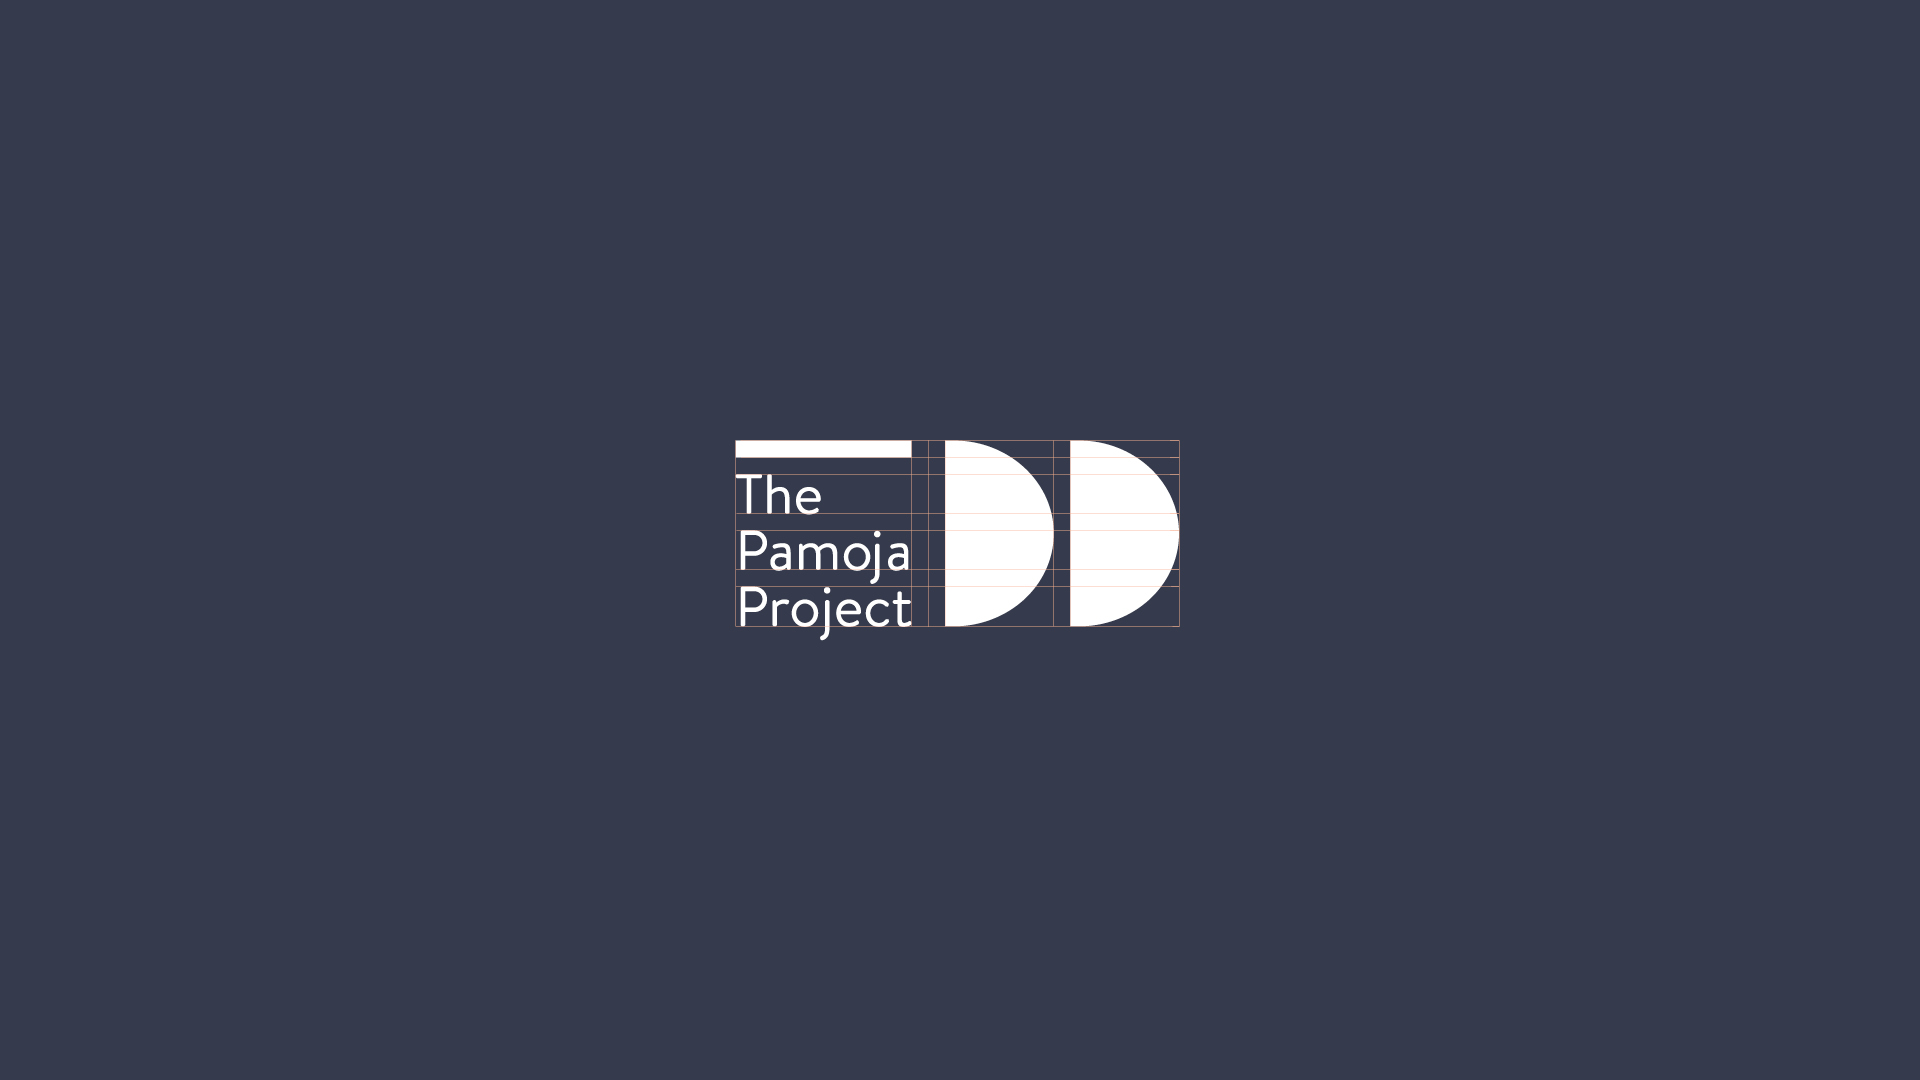 The Pamoja Project_Website material